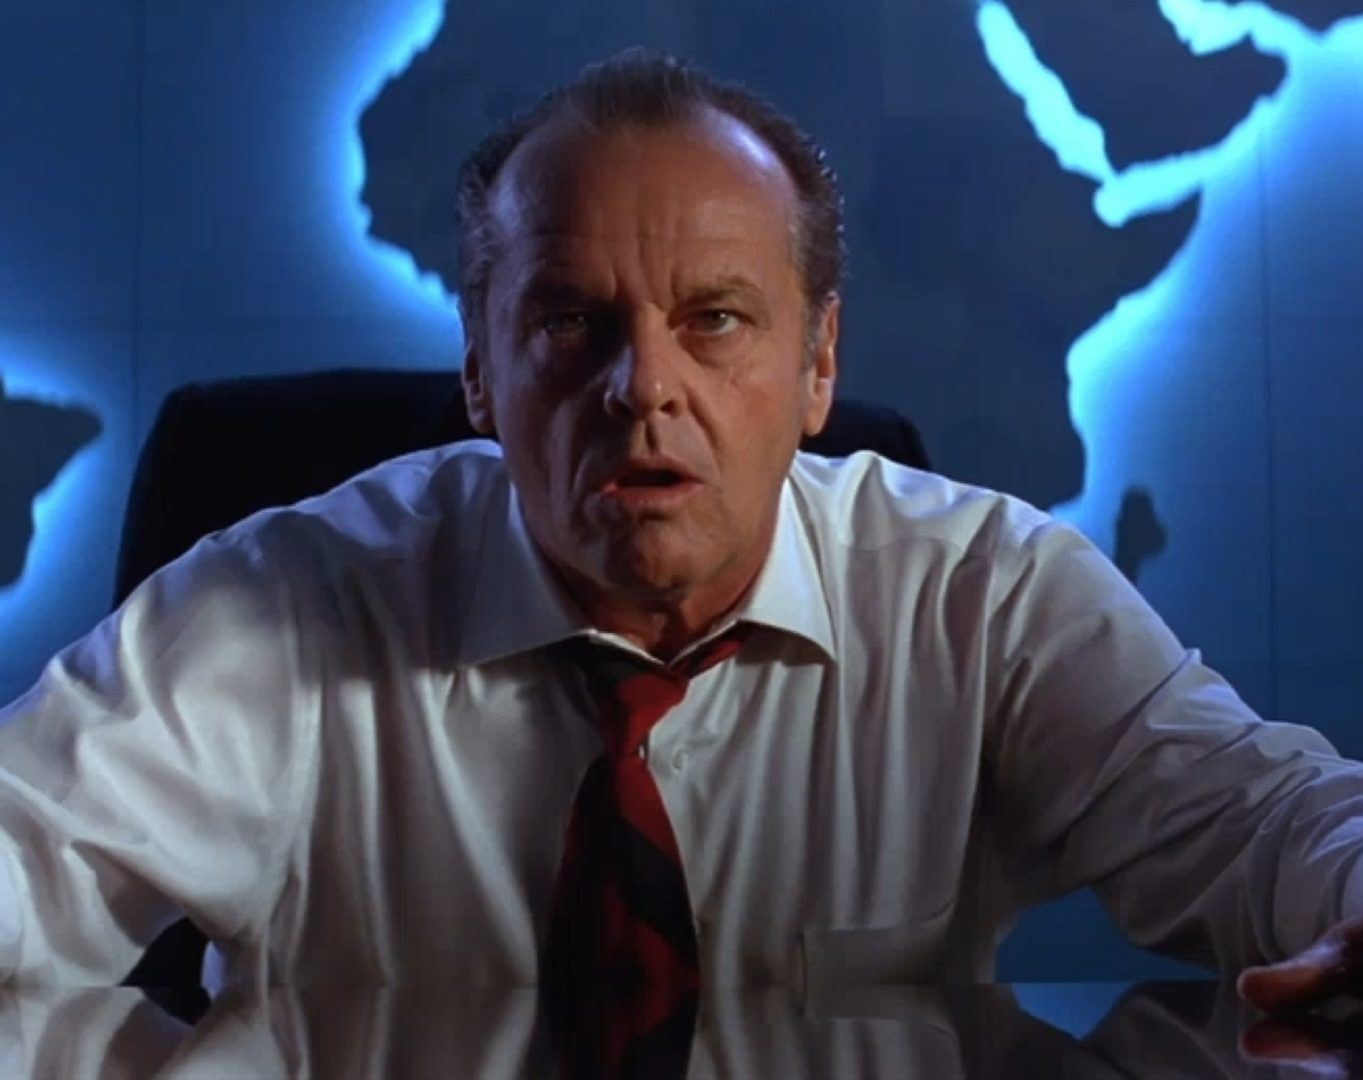 1 178 e1611132571208 How Jack Nicholson Went From Class Clown To Bad Boy of Mulholland Drive